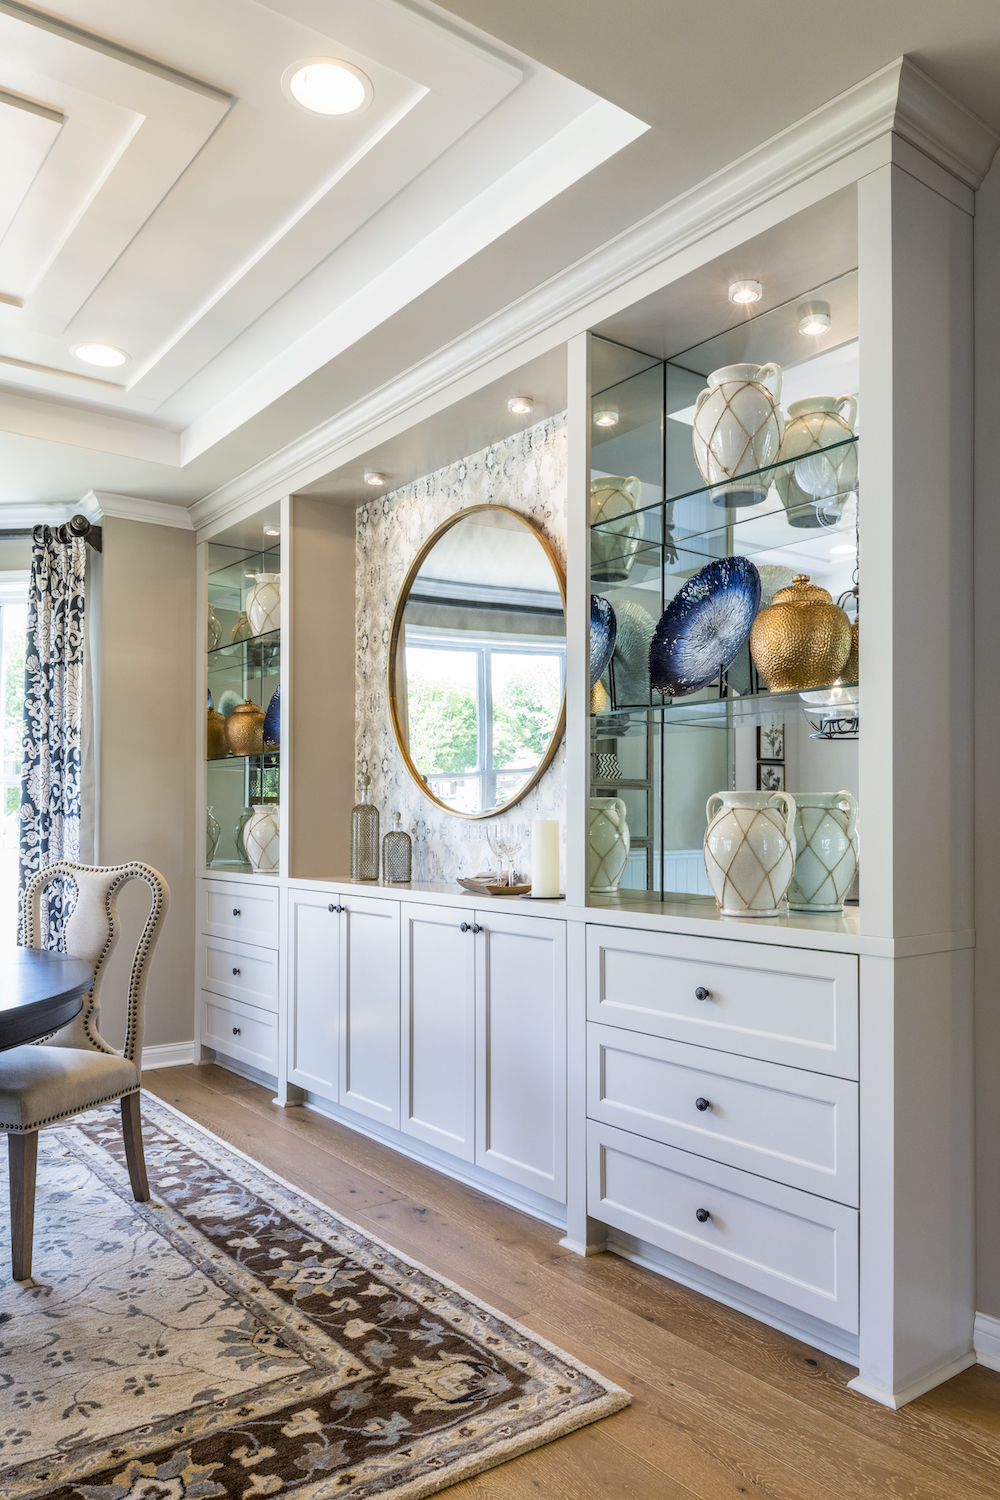 Interior Design, Dining Room, Custom Cabinetry, Tray Ceiling